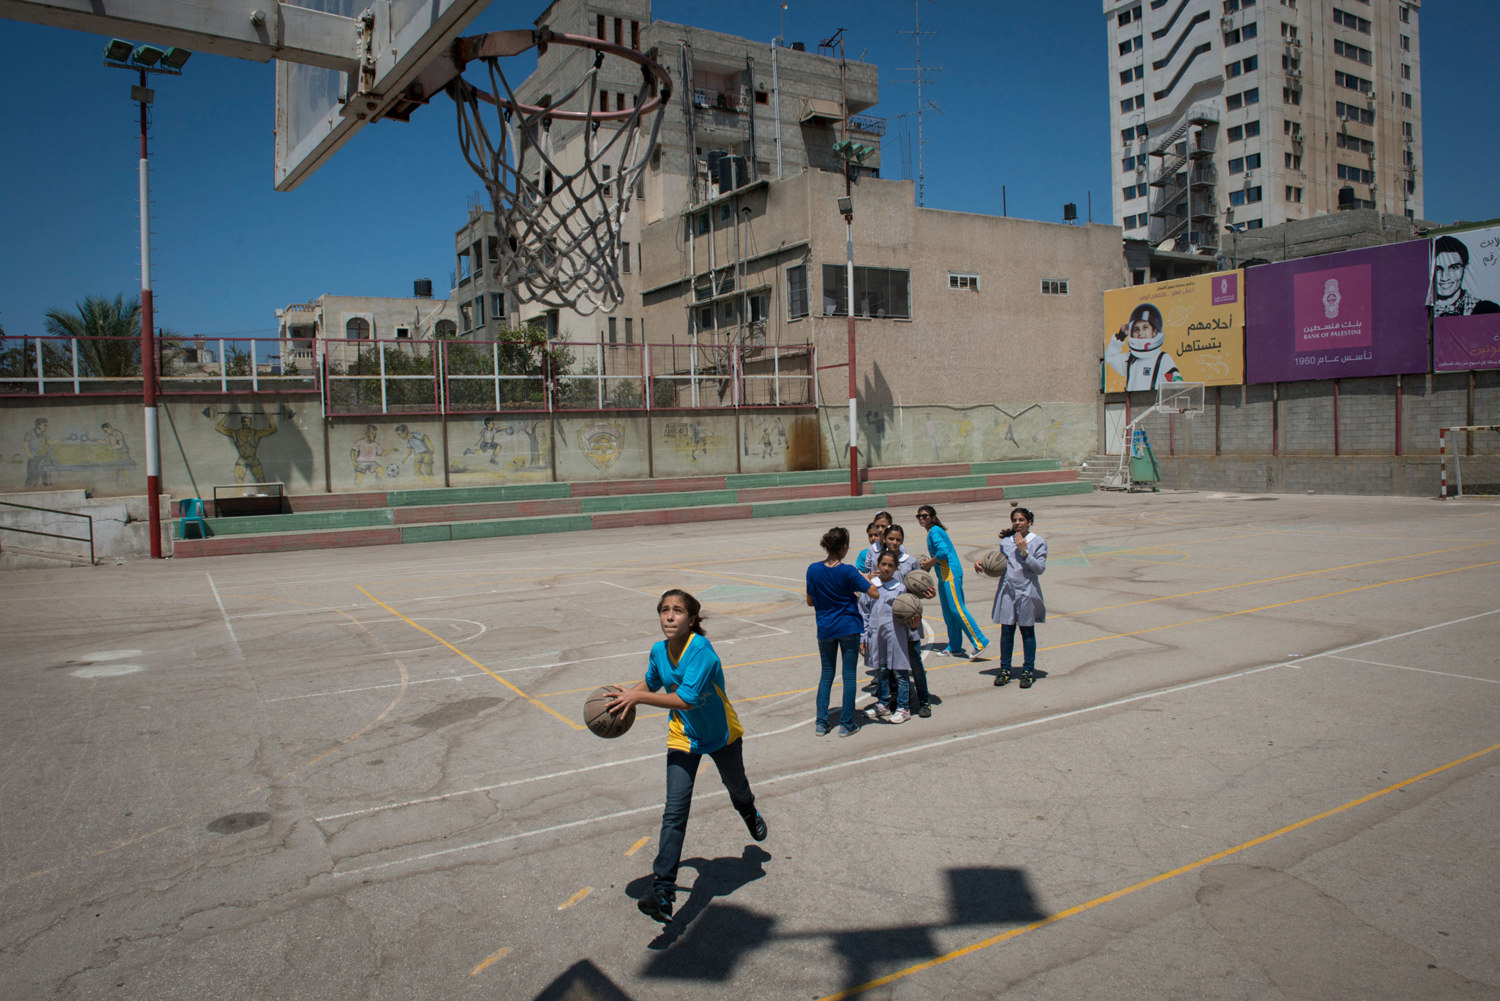 Girls play Basketball at the Gaza Athletic Club, one of the oldest sporting clubs  in the country. The practice is sponsored by PACES, a charity that works to get girls active. Women in Gaza typically do all types of sports till the age of 16, when family pressure forces them to stop as many families seek to find husbands for them.